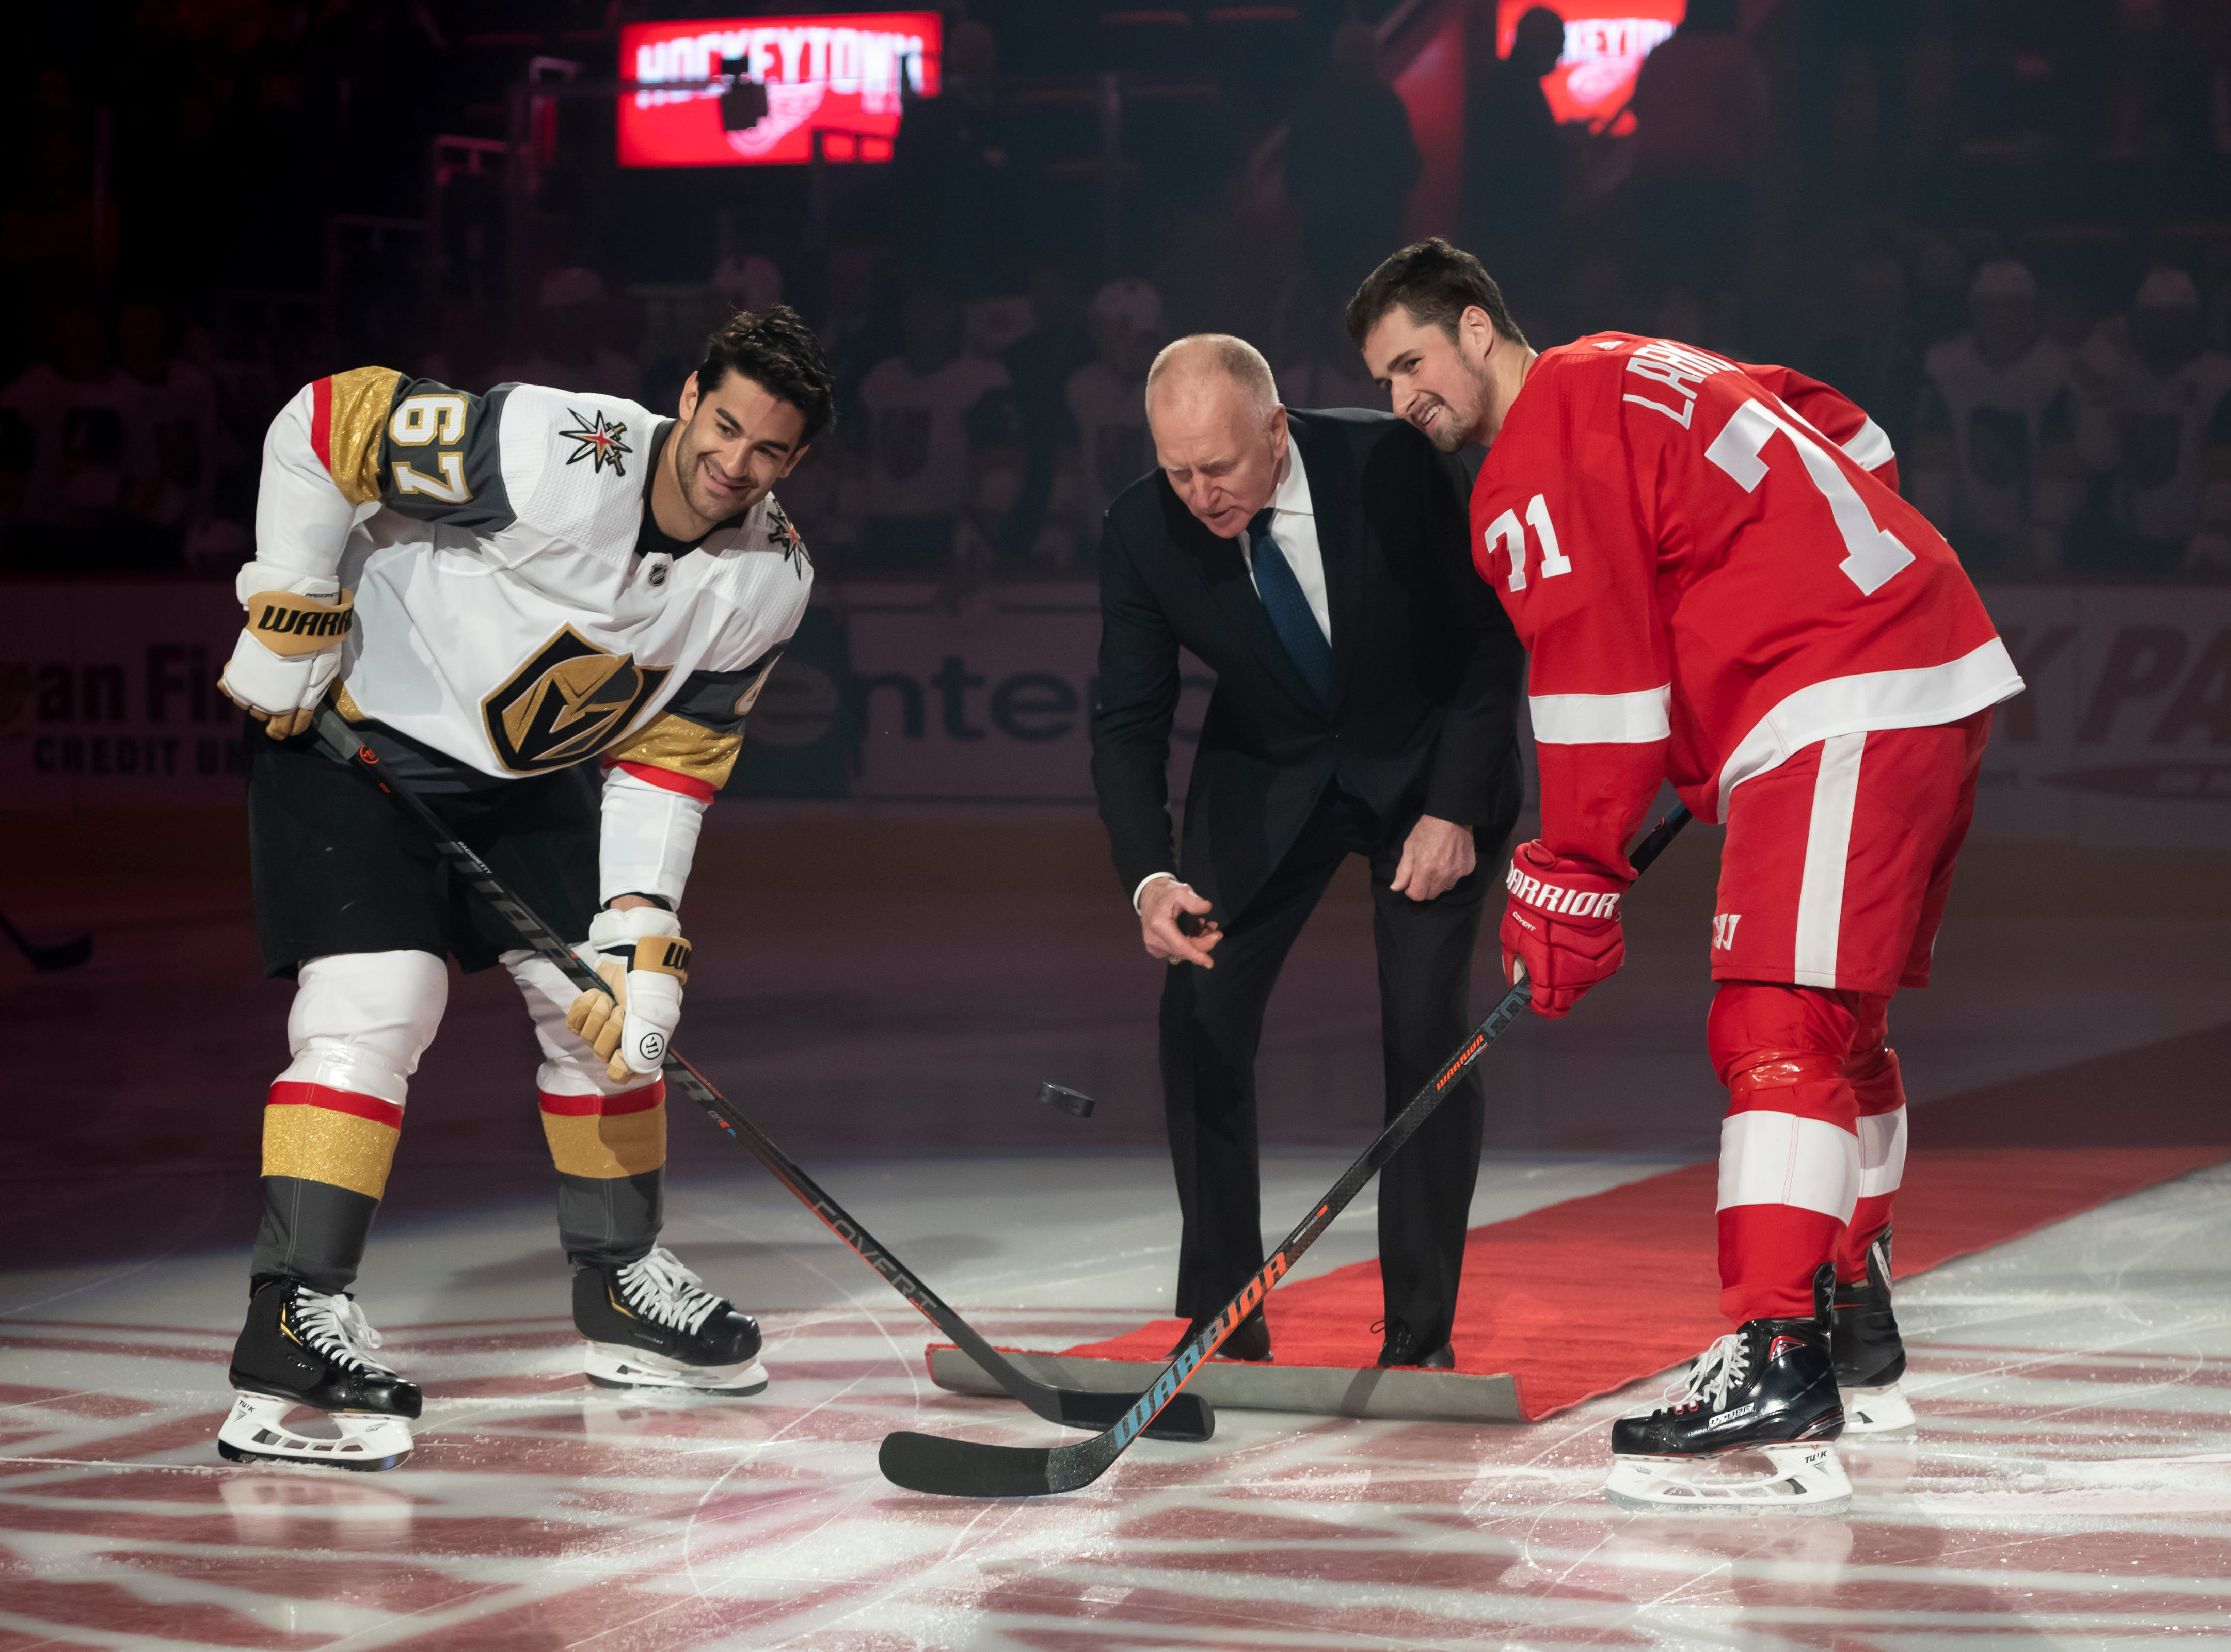 Former University of Michigan head hockey coach Red Berenson participates in a ceremonial puck drop with Vegas left wing Max Pacioretty and Detroit center Dylan Larkin before the start of the game.